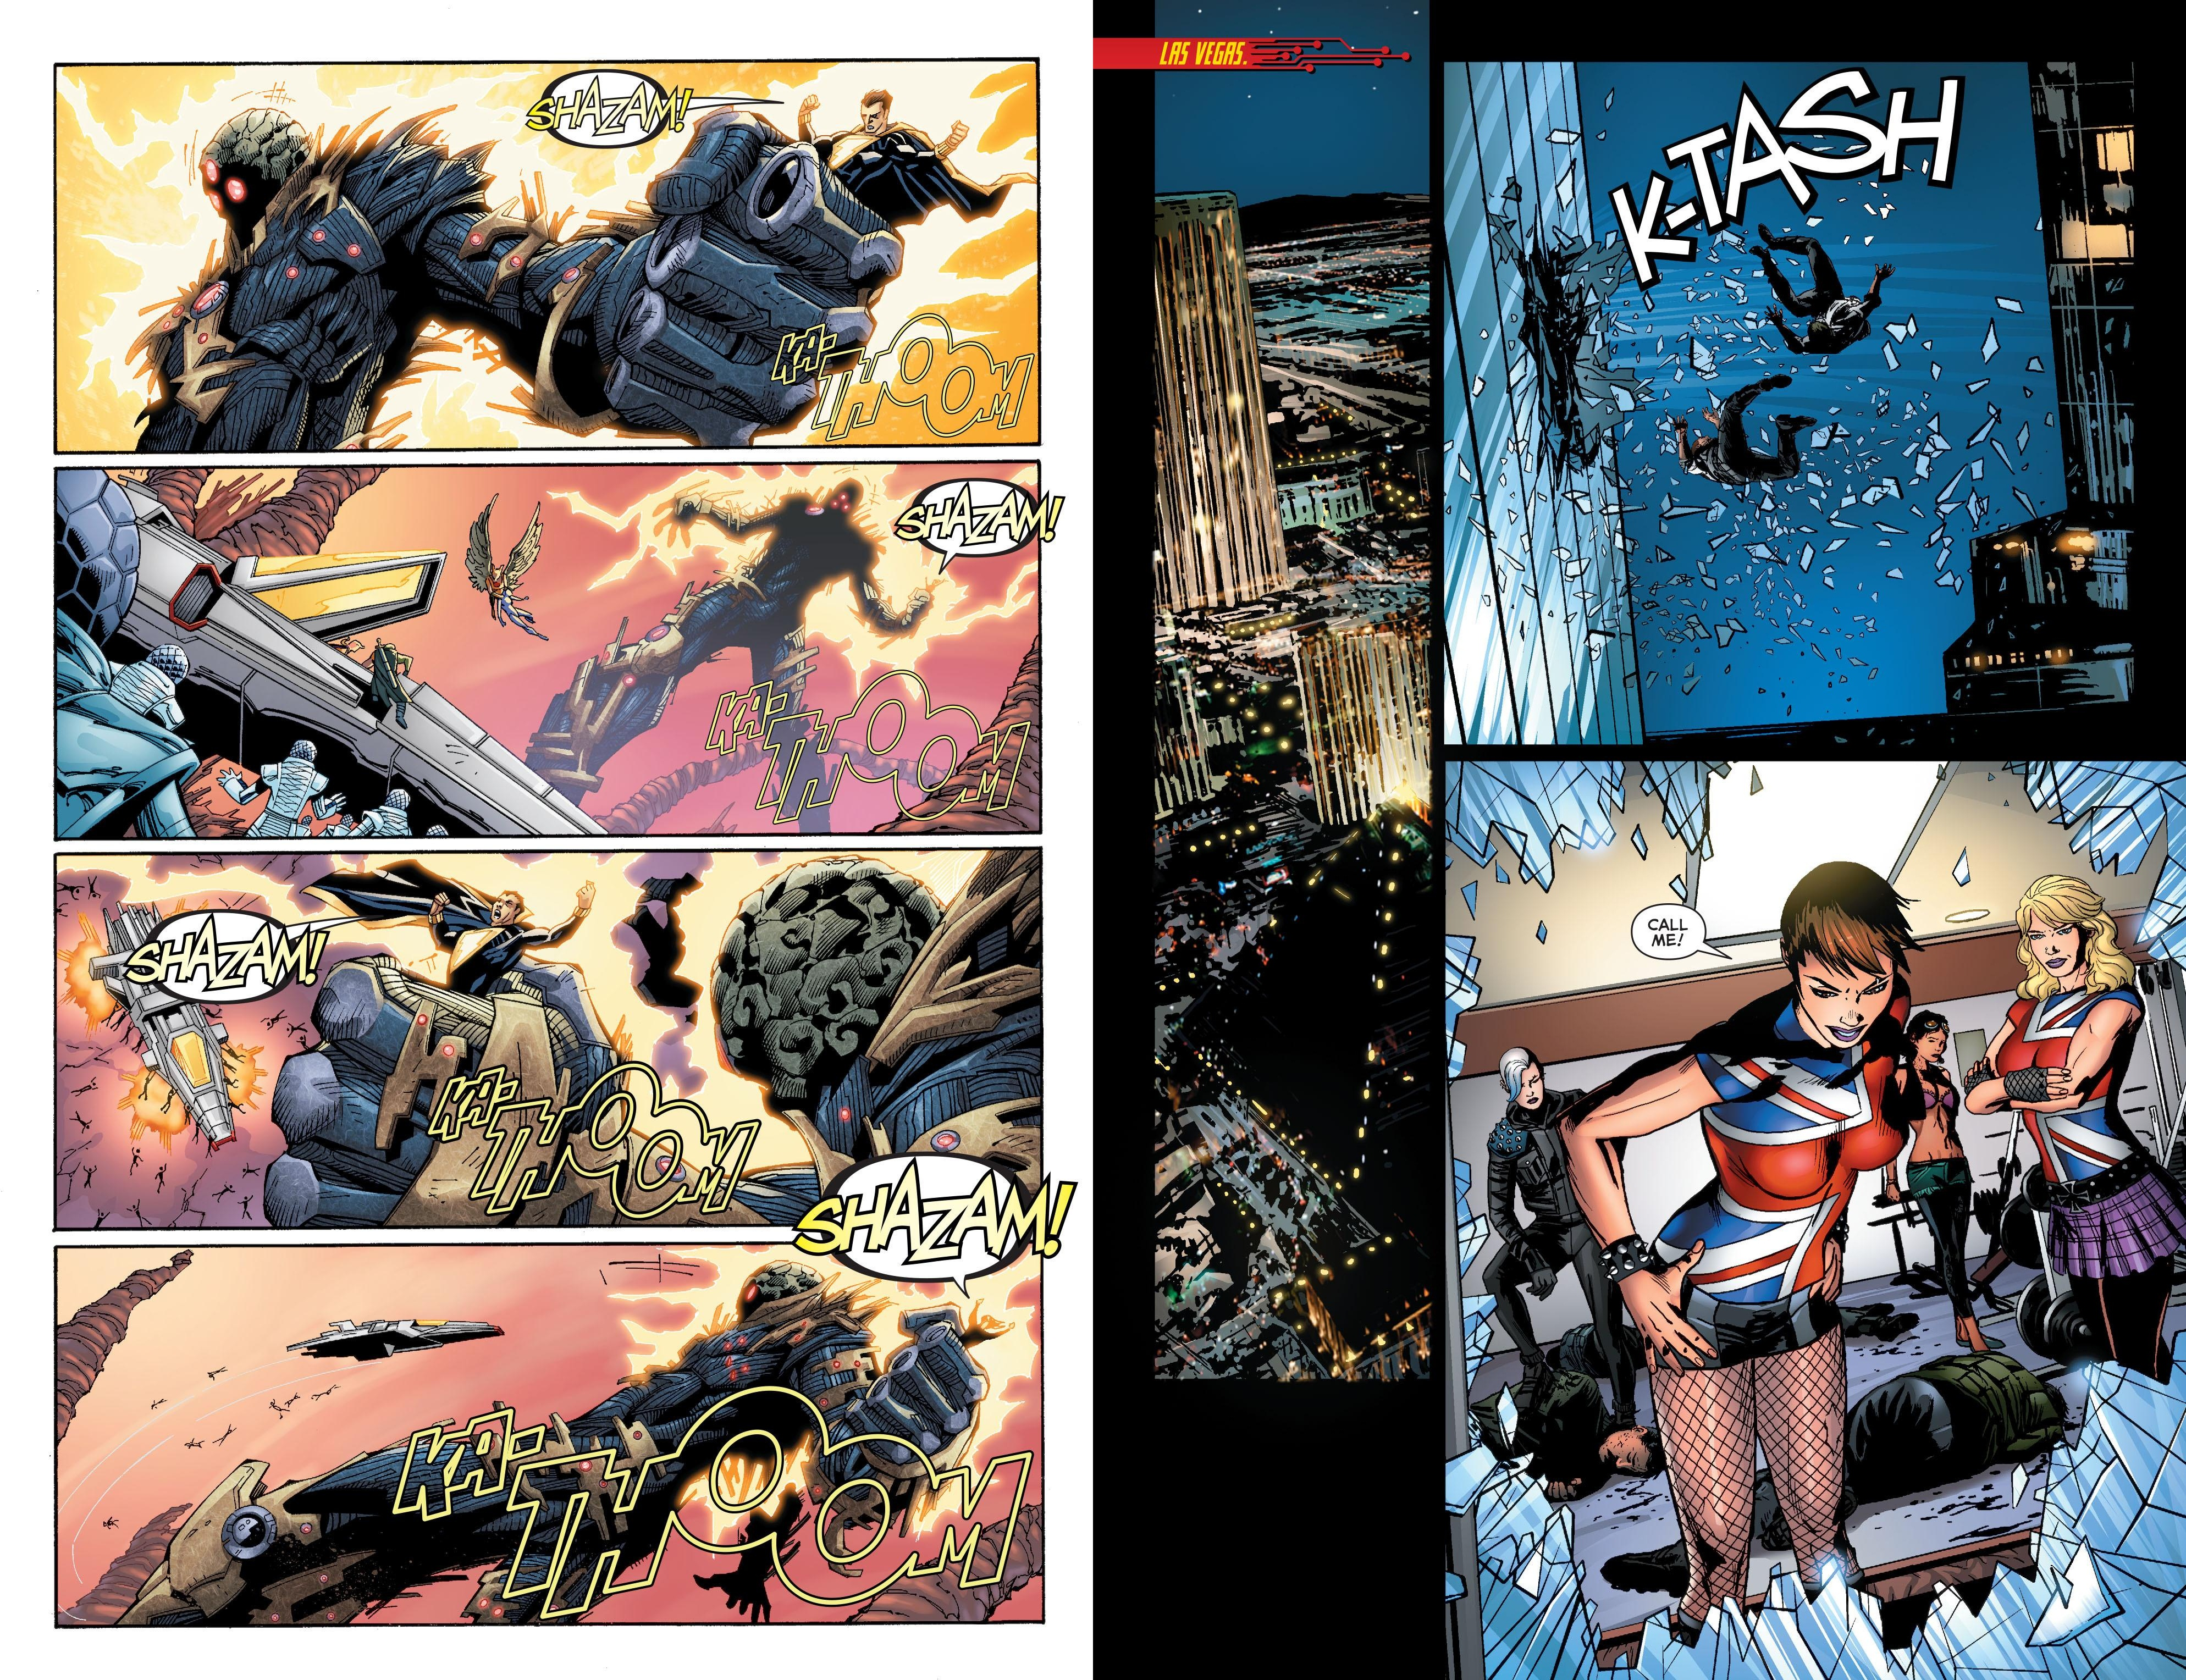 The New 52 Futures End V2 review